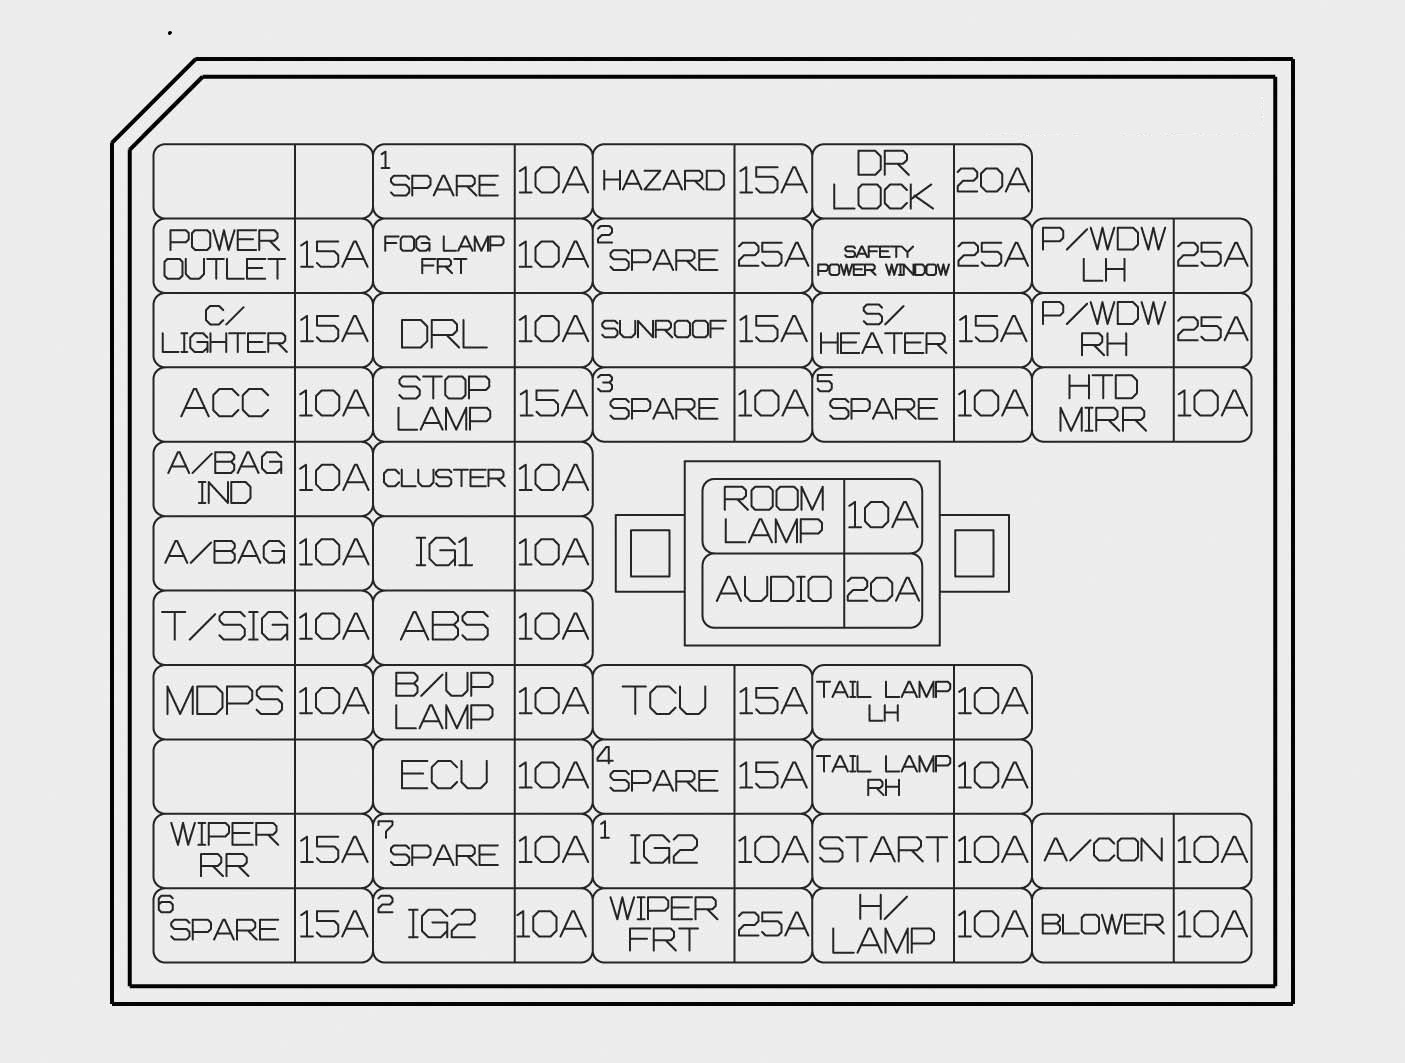 lexus lx470 fuse box diagram wiring library diagram as well vanagon fuse diagram moreover 1981 honda cx500 wiring [ 1405 x 1063 Pixel ]